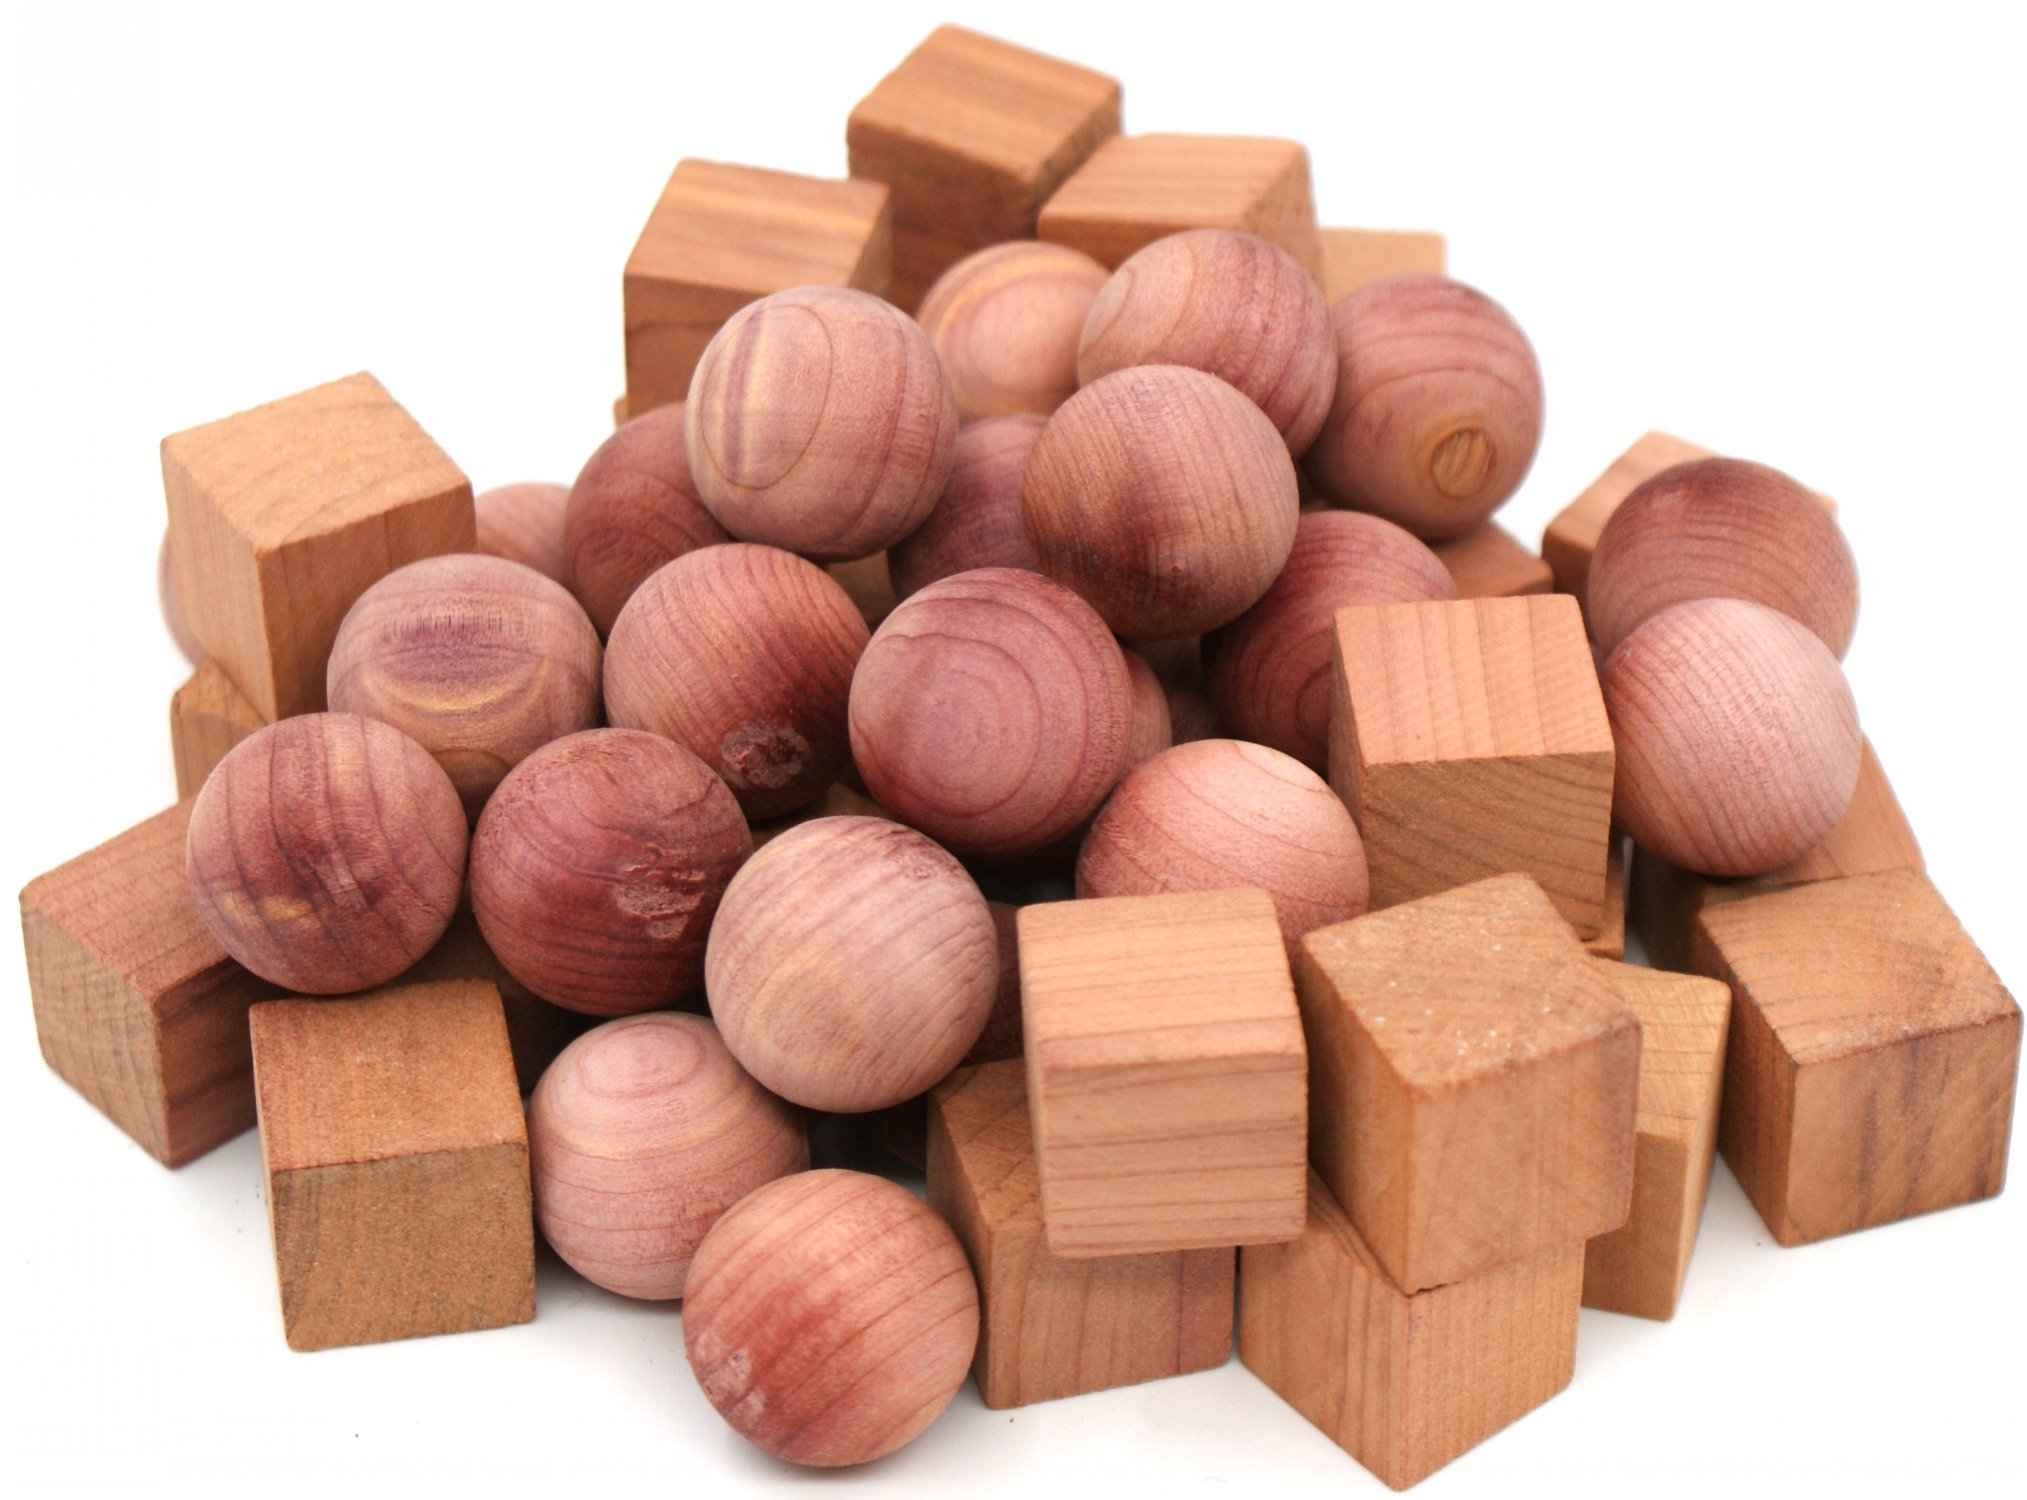 Wahdawn Moth Protection Cedar Balls - Aeromatic Red Cedar Wood Blocks Moths Away Closet Storage Shoes Freshener 50 Pieces